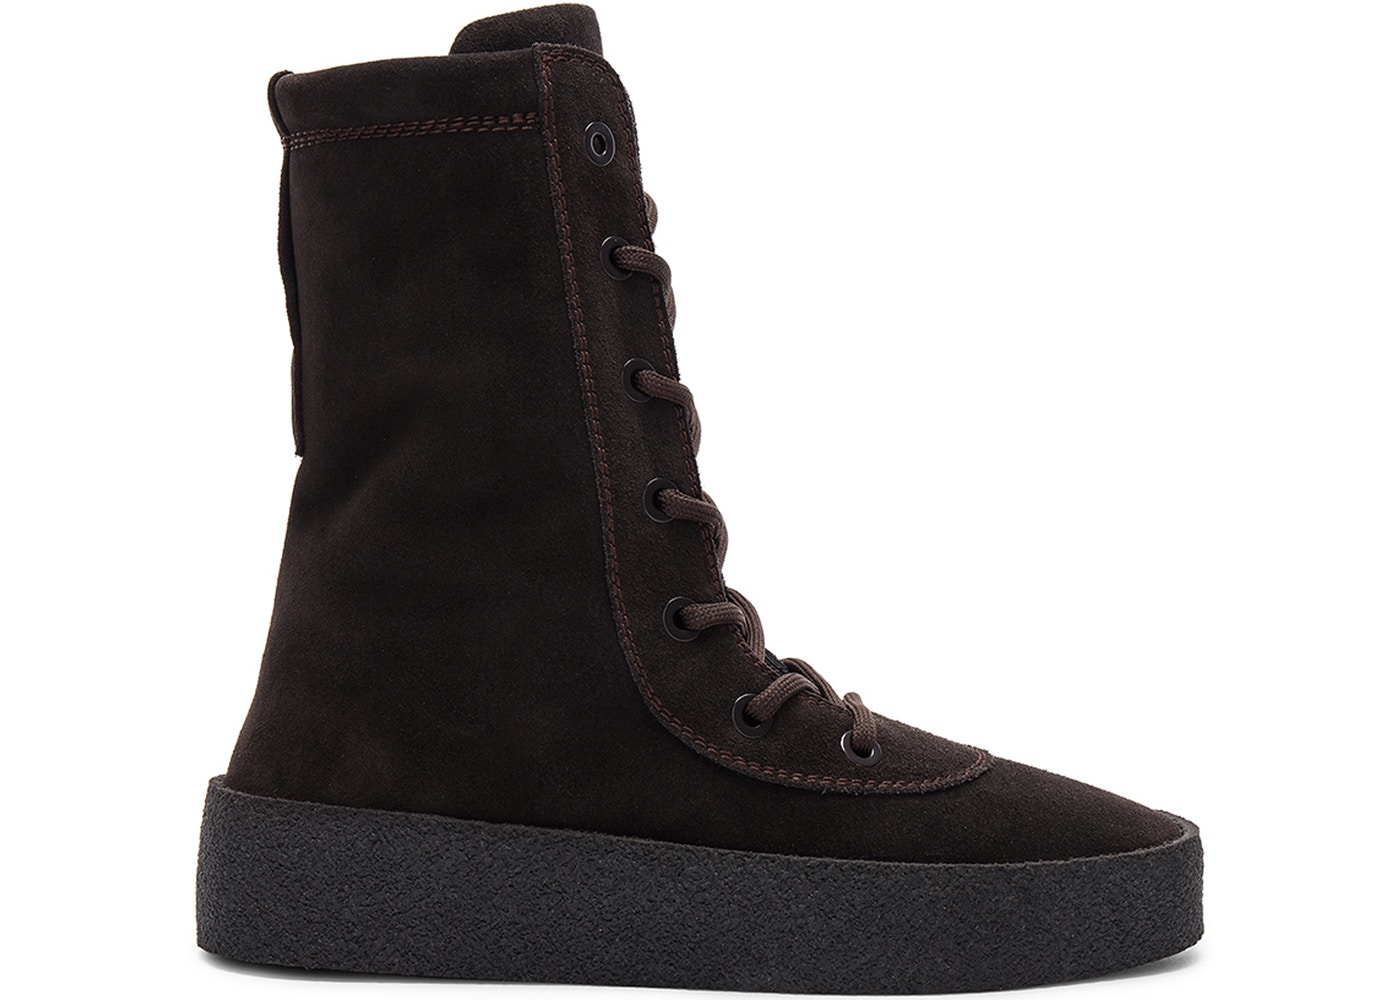 bea445a348f Sell. or Ask. Size  47. View All Bids. Yeezy Crepe Boot Season 4 Oil